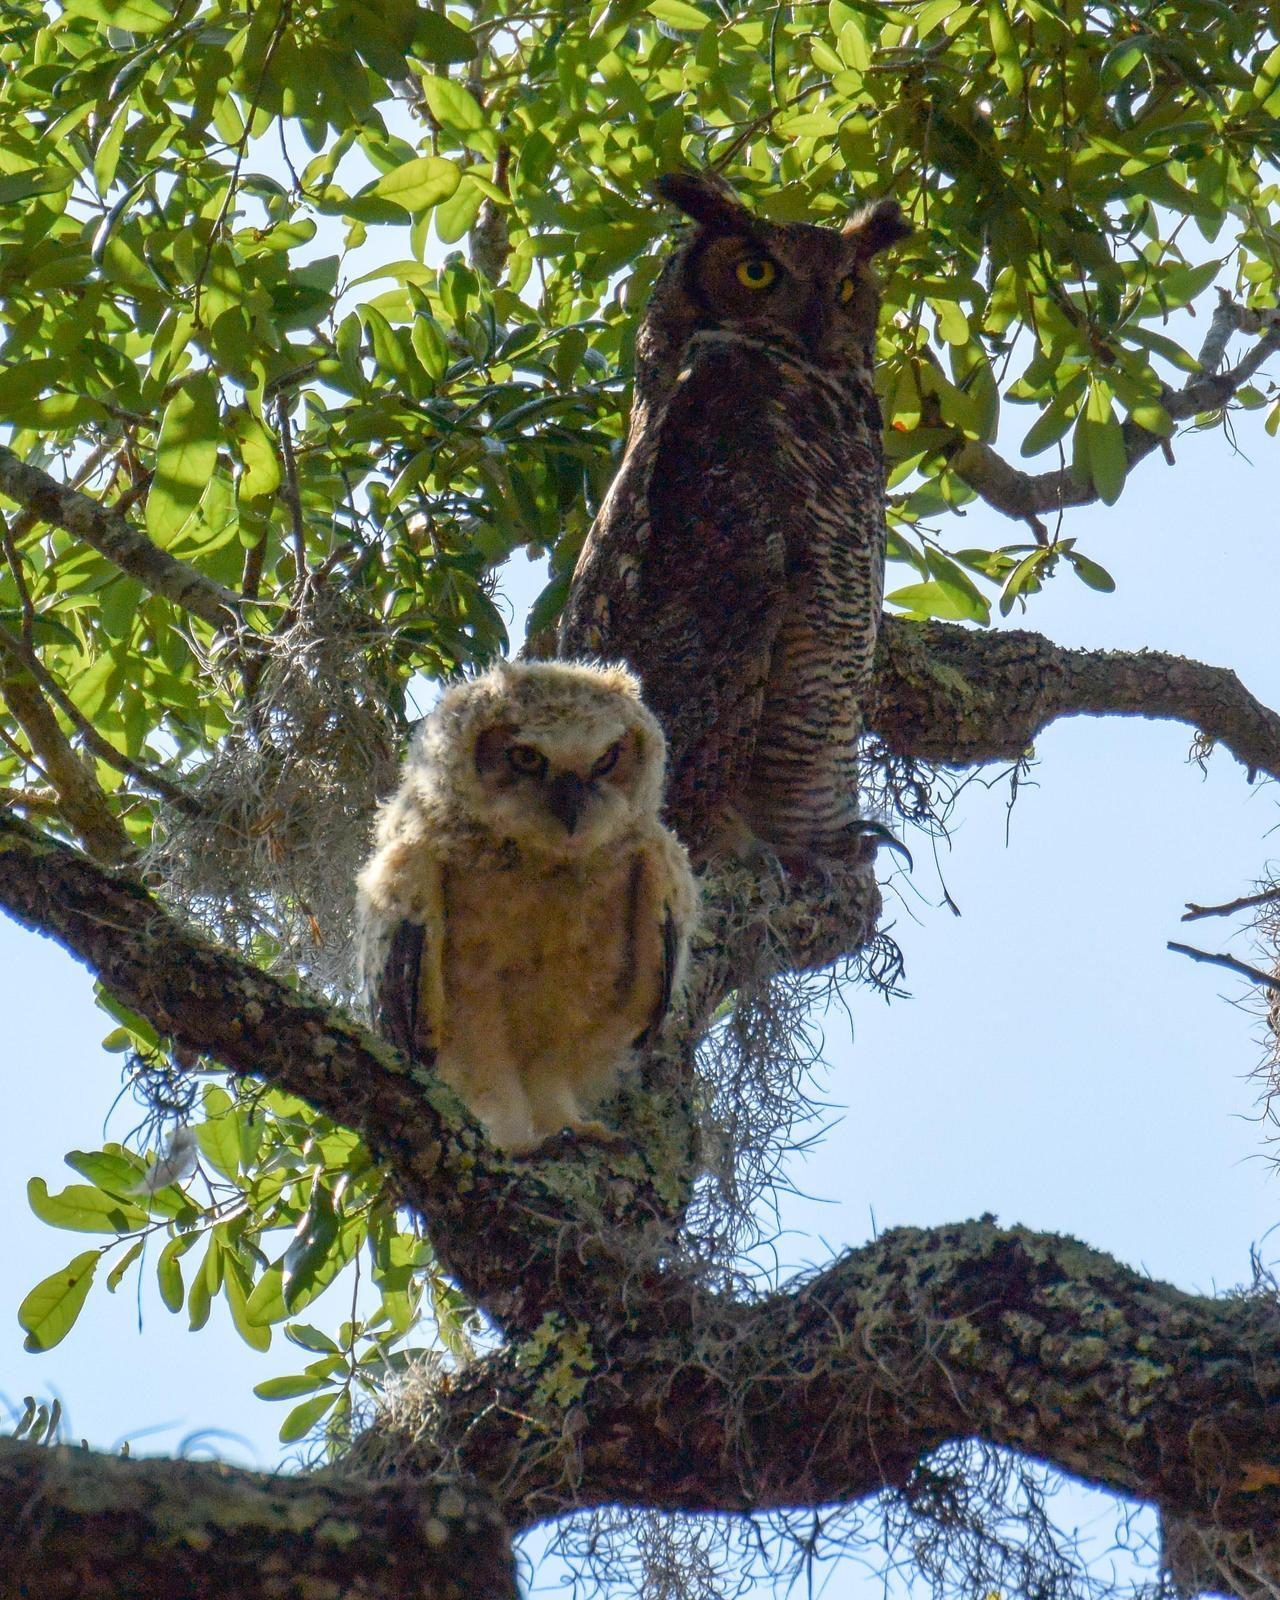 Great Horned Owl Photo by Emily Percival